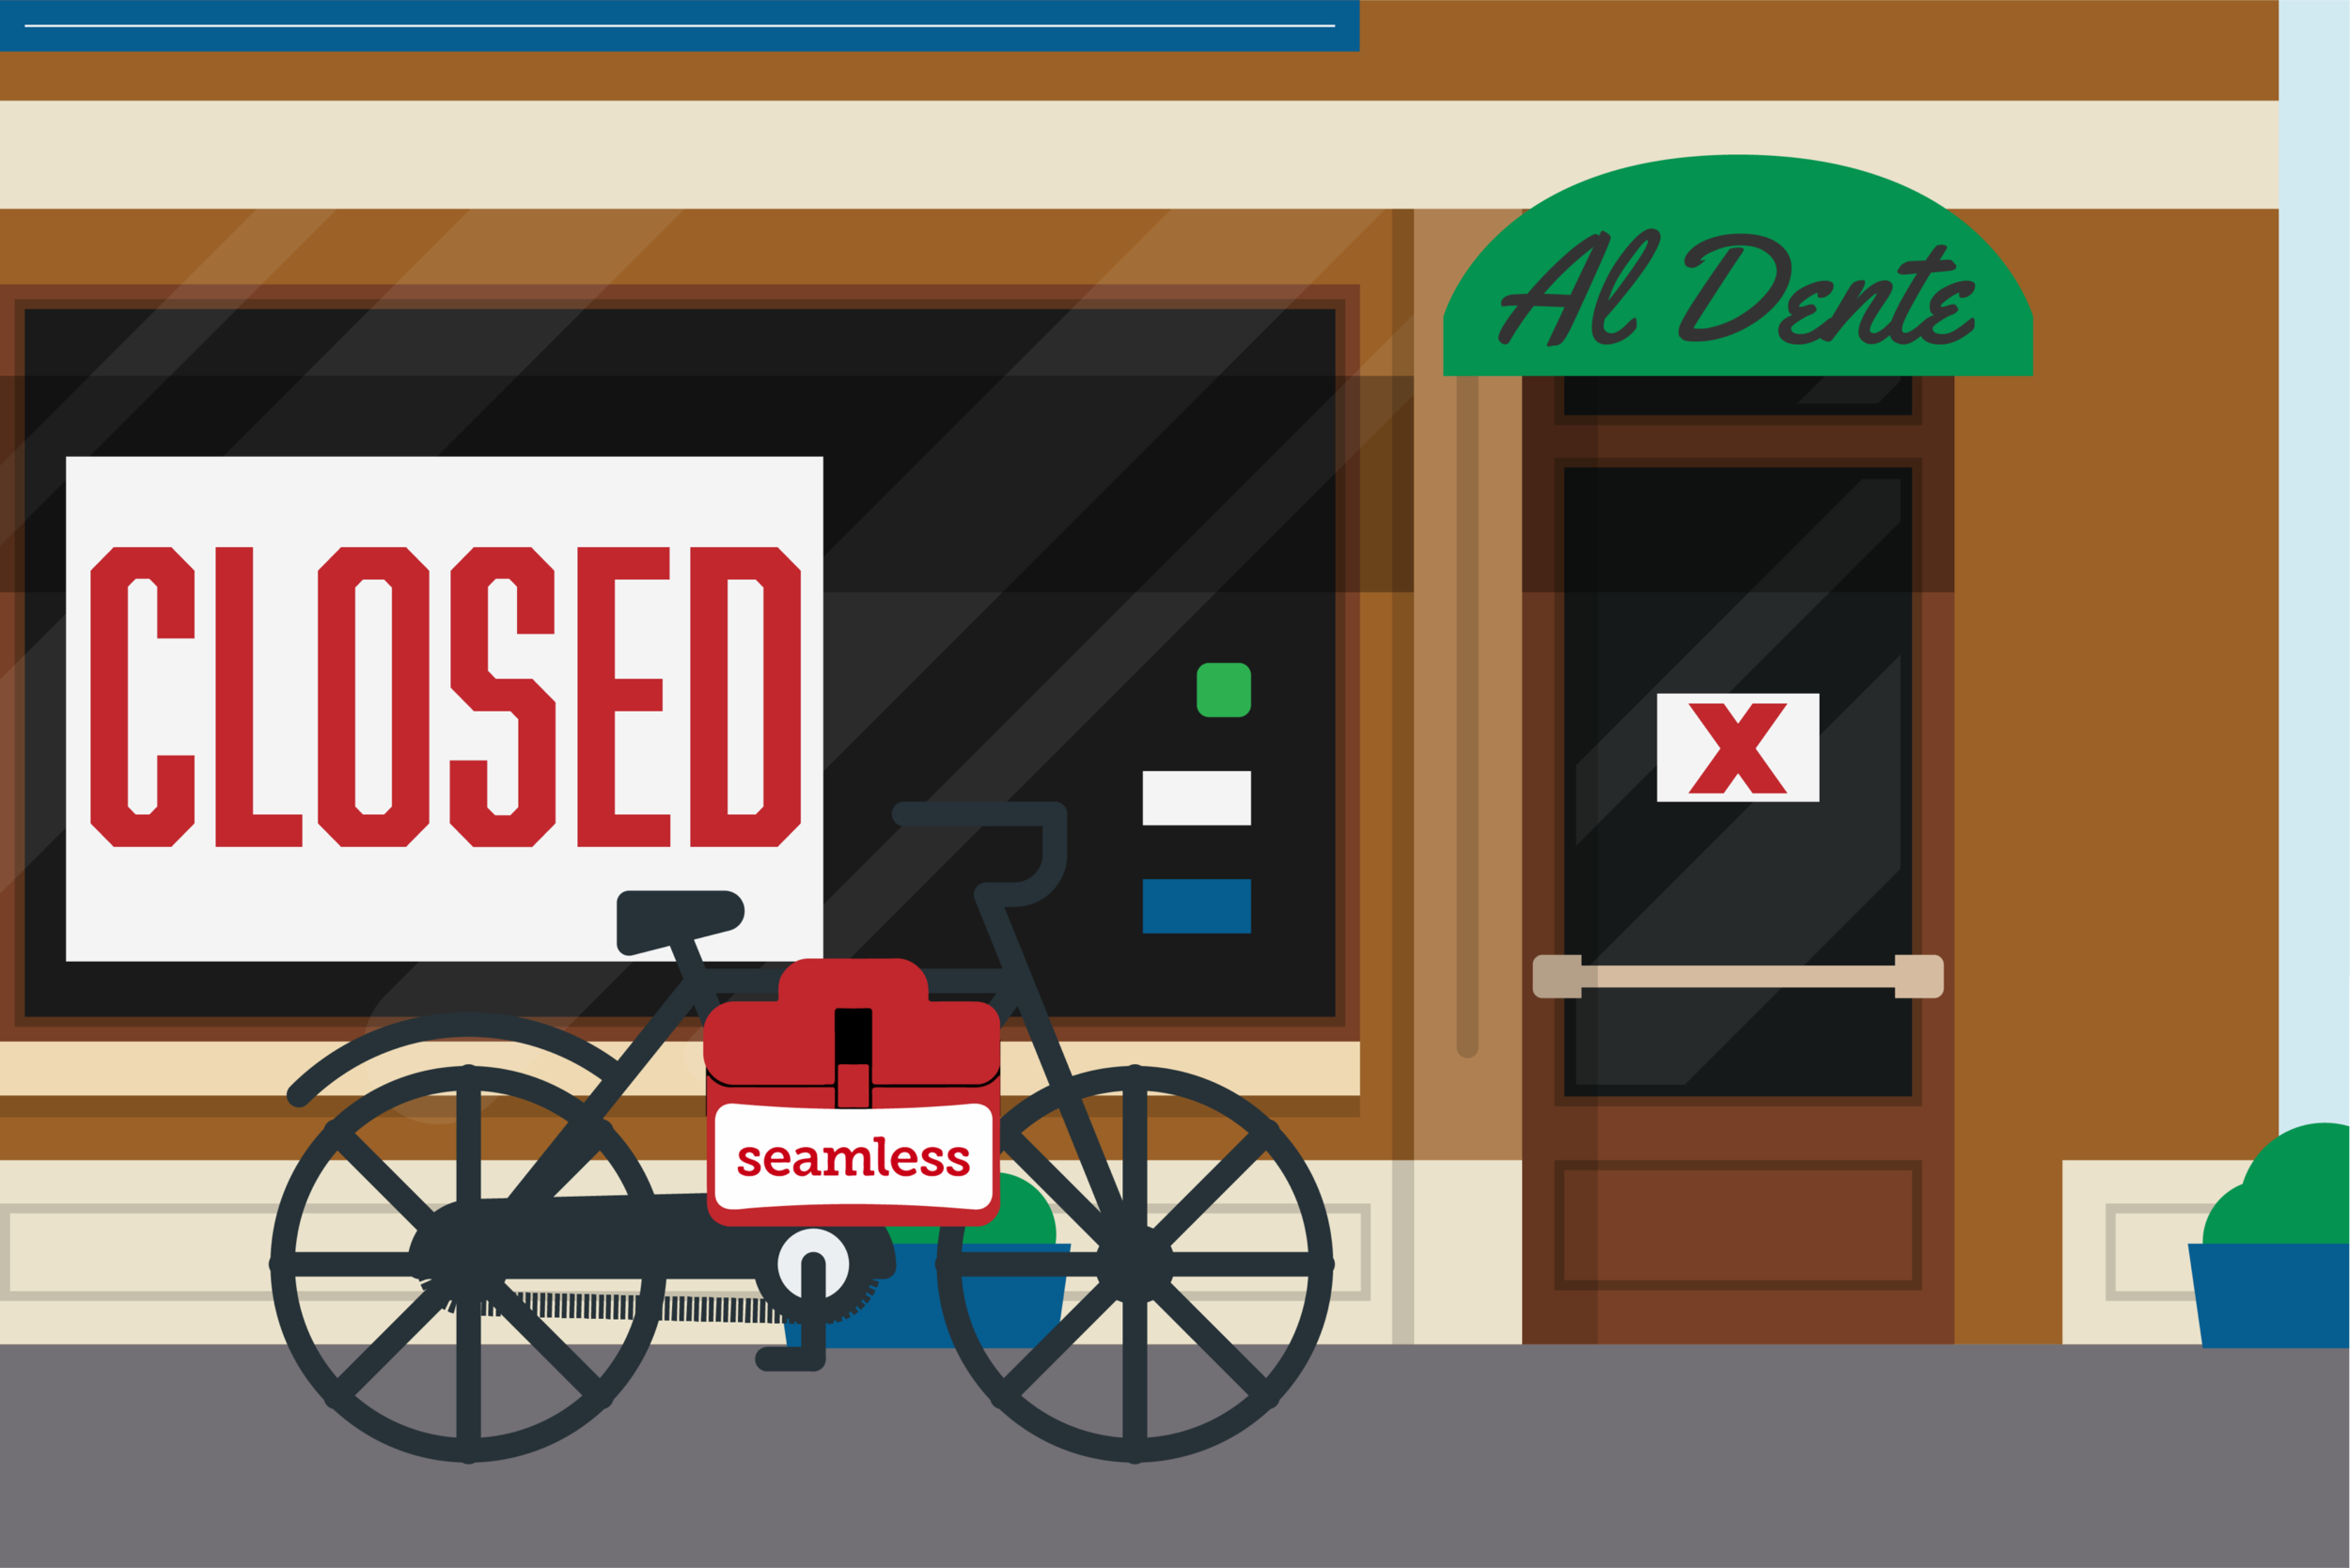 The sudden surge in popularity for delivery companies like Grubhub and Seamless has acted as a death sentence for some local New York businesses. (Chase Manze)